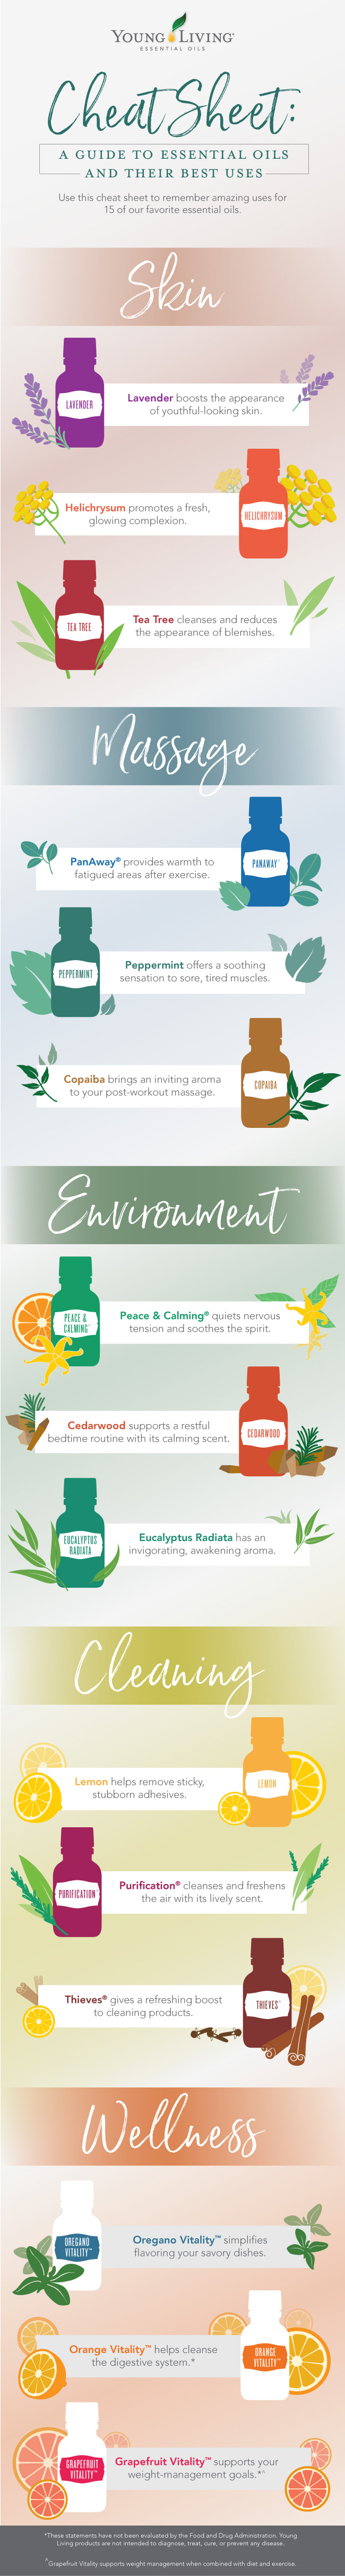 Essential Oils Cheat Sheet Young Living Blog